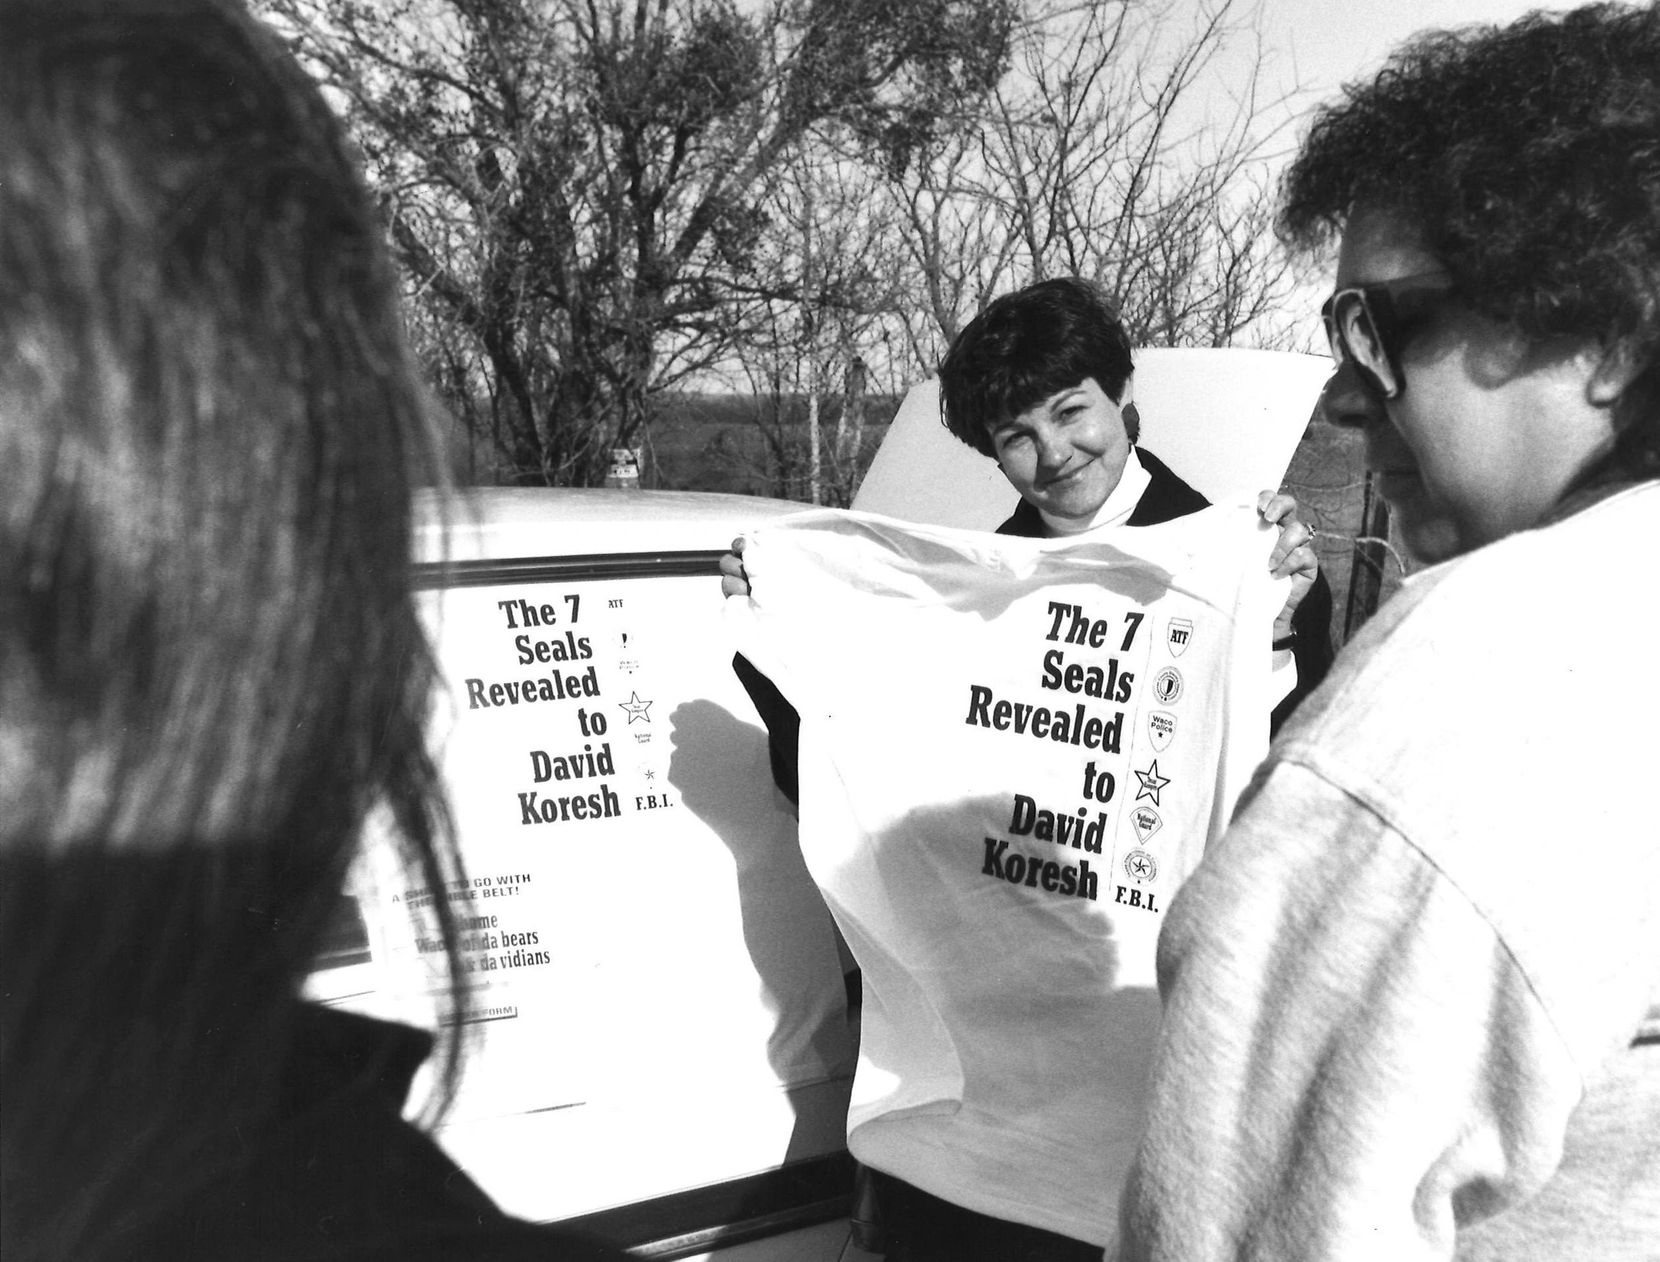 March 12, 1993: Rosaline Eastepp, of Garland, attempted to sell T-shirts to two women in Waco to observe the stand off.